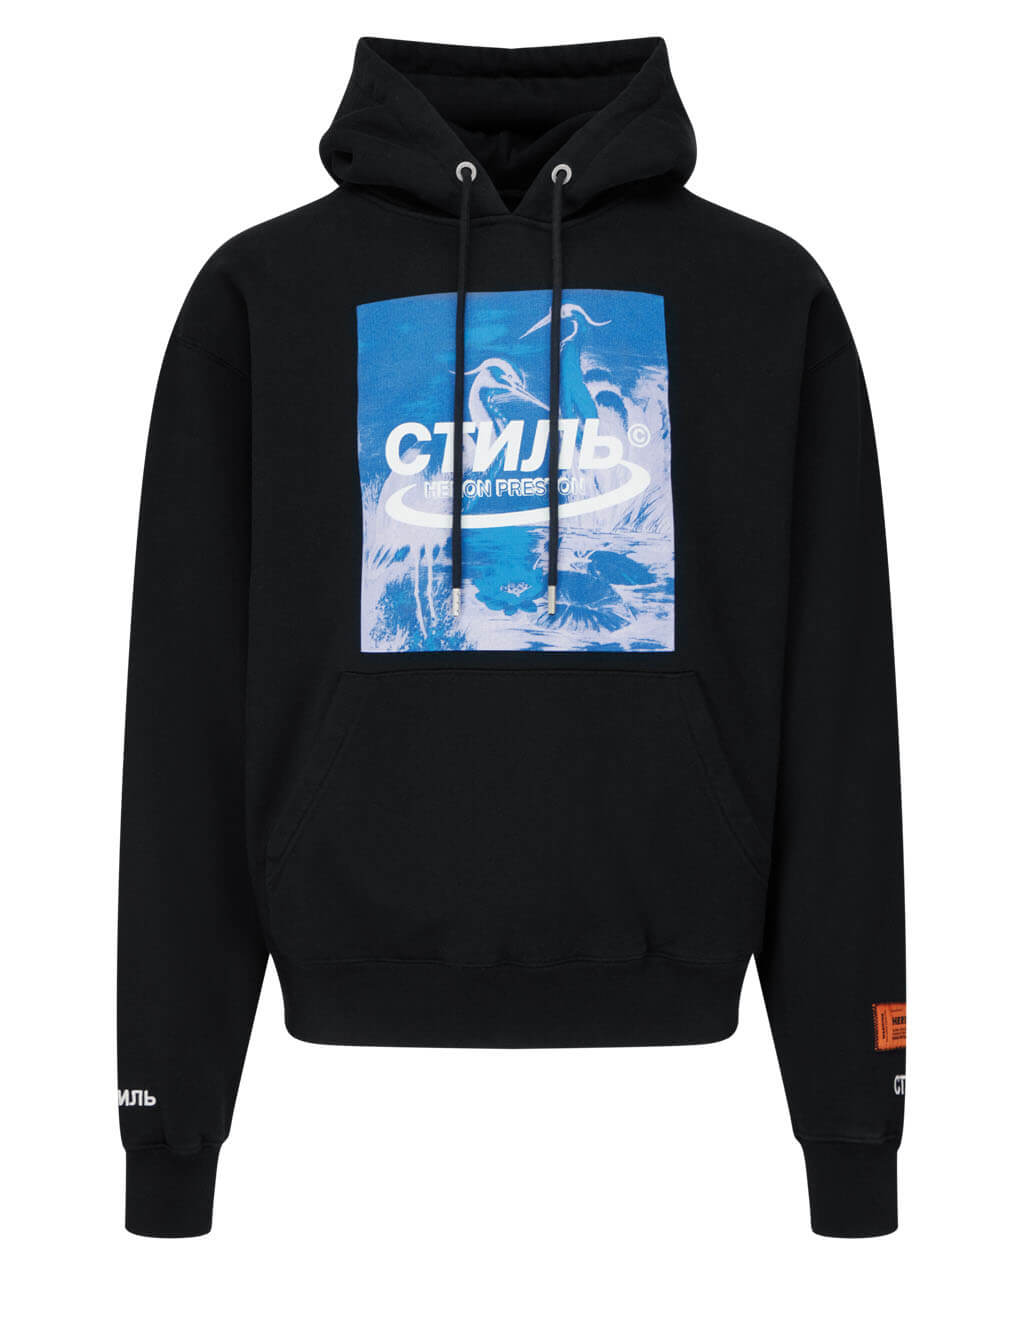 Men's Heron Preston Halo Herons Hoodie in Black/Blue - HMBB015R21JER0011049